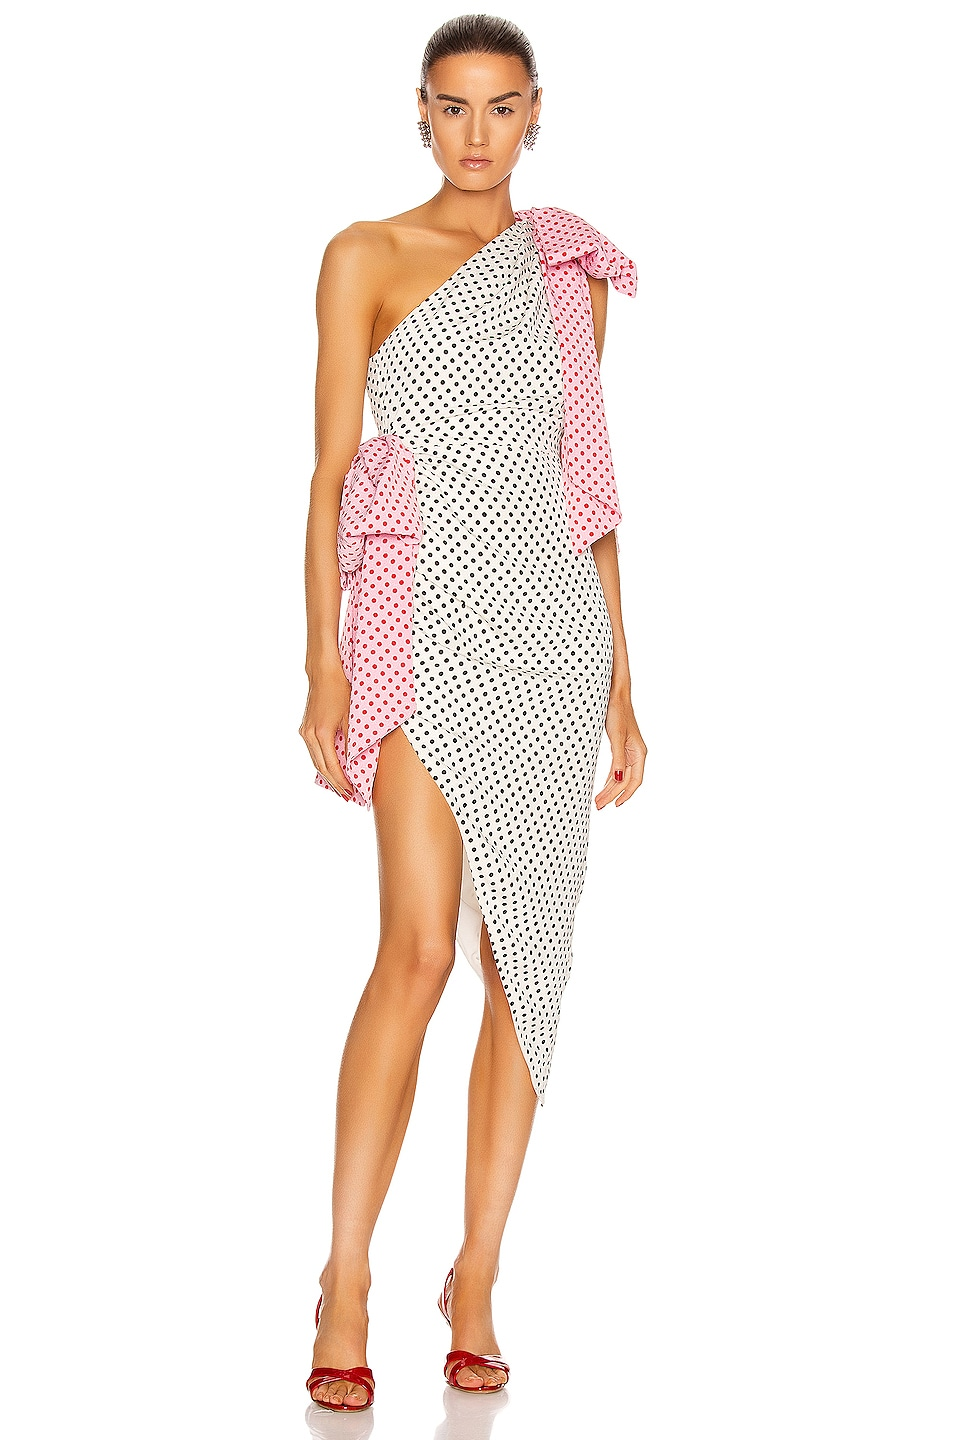 Image 1 of MARIANNA SENCHINA Bow Wow Dress in Milky Black Polka Dot with Pink Bows